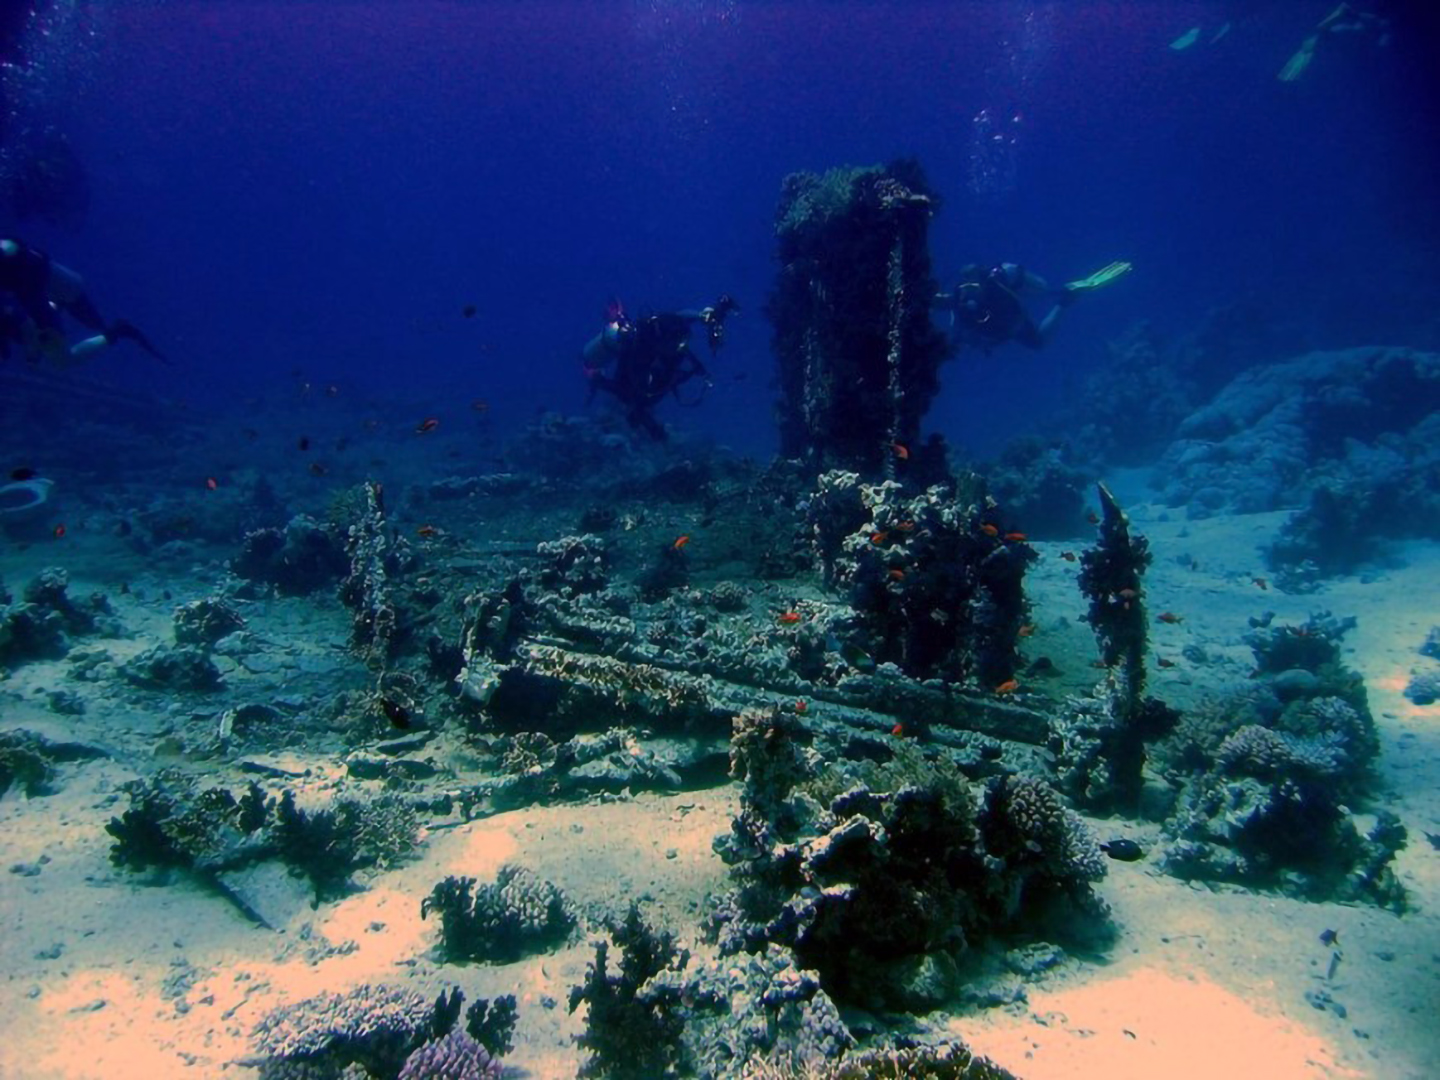 An image of divers spearfishing around the wrecks of the upper Florida Keys